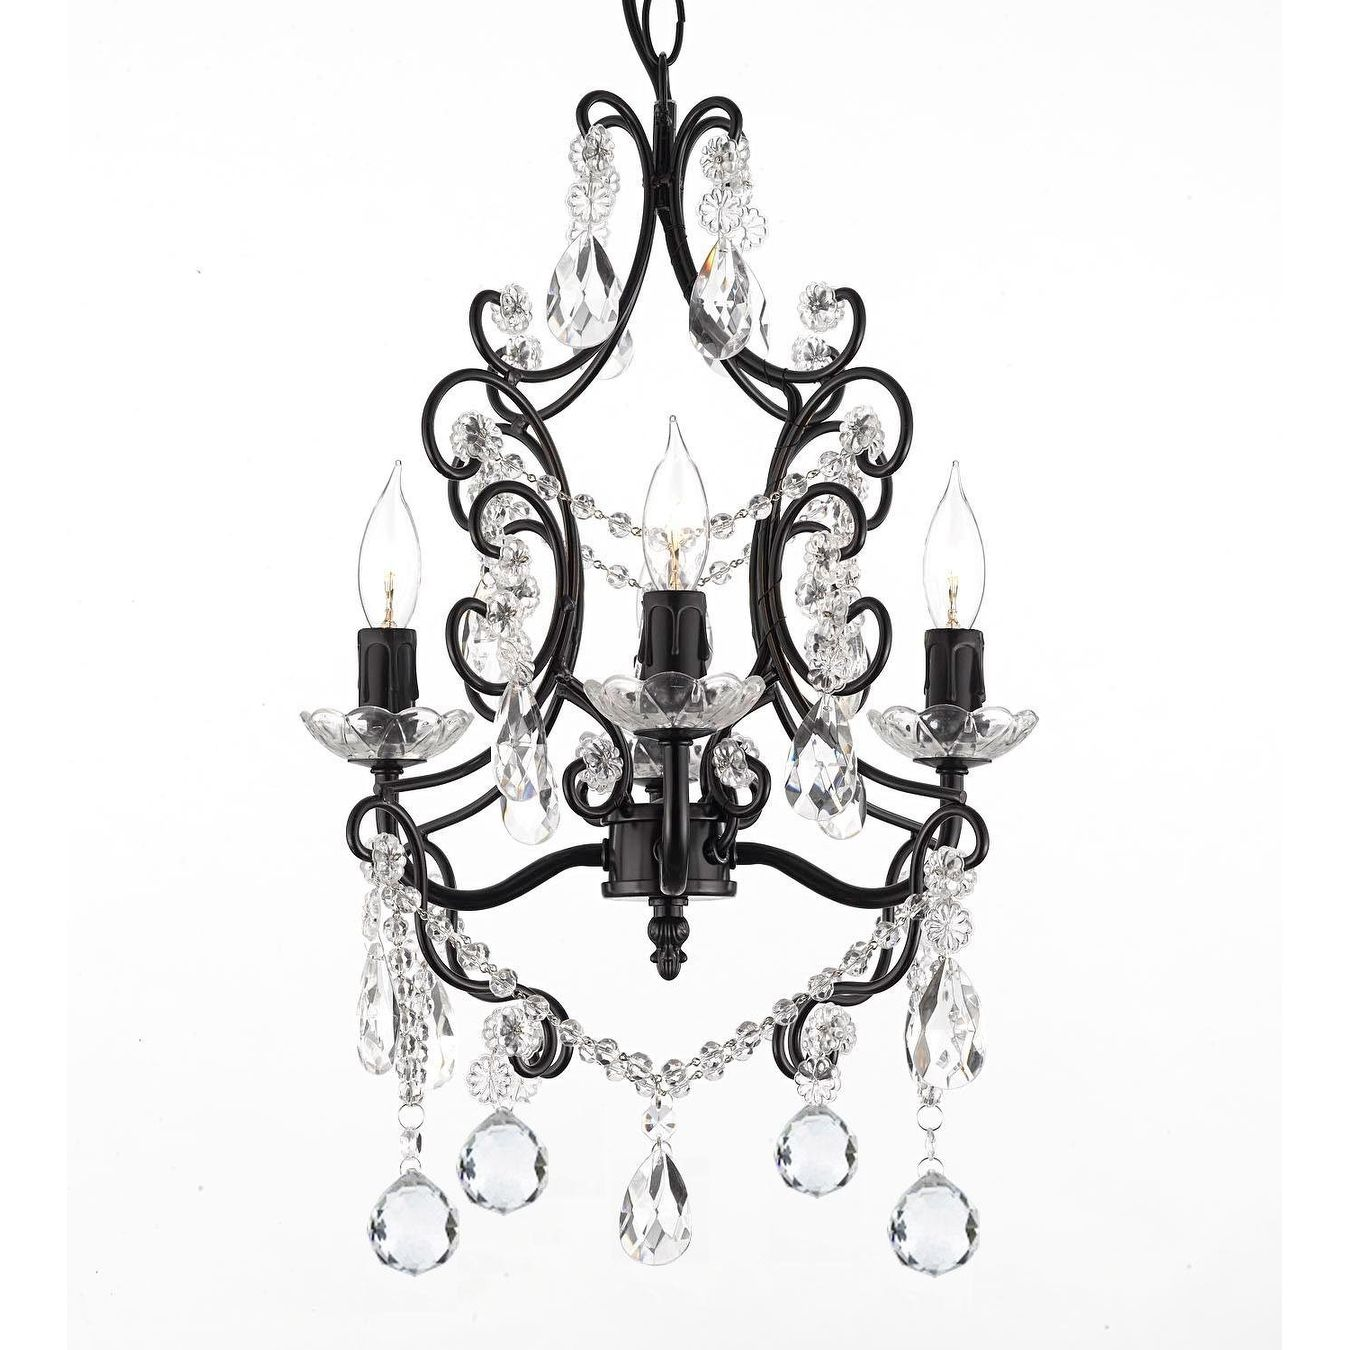 Wrought Iron Amp Crystal 4 Light Chandelier Pendant With